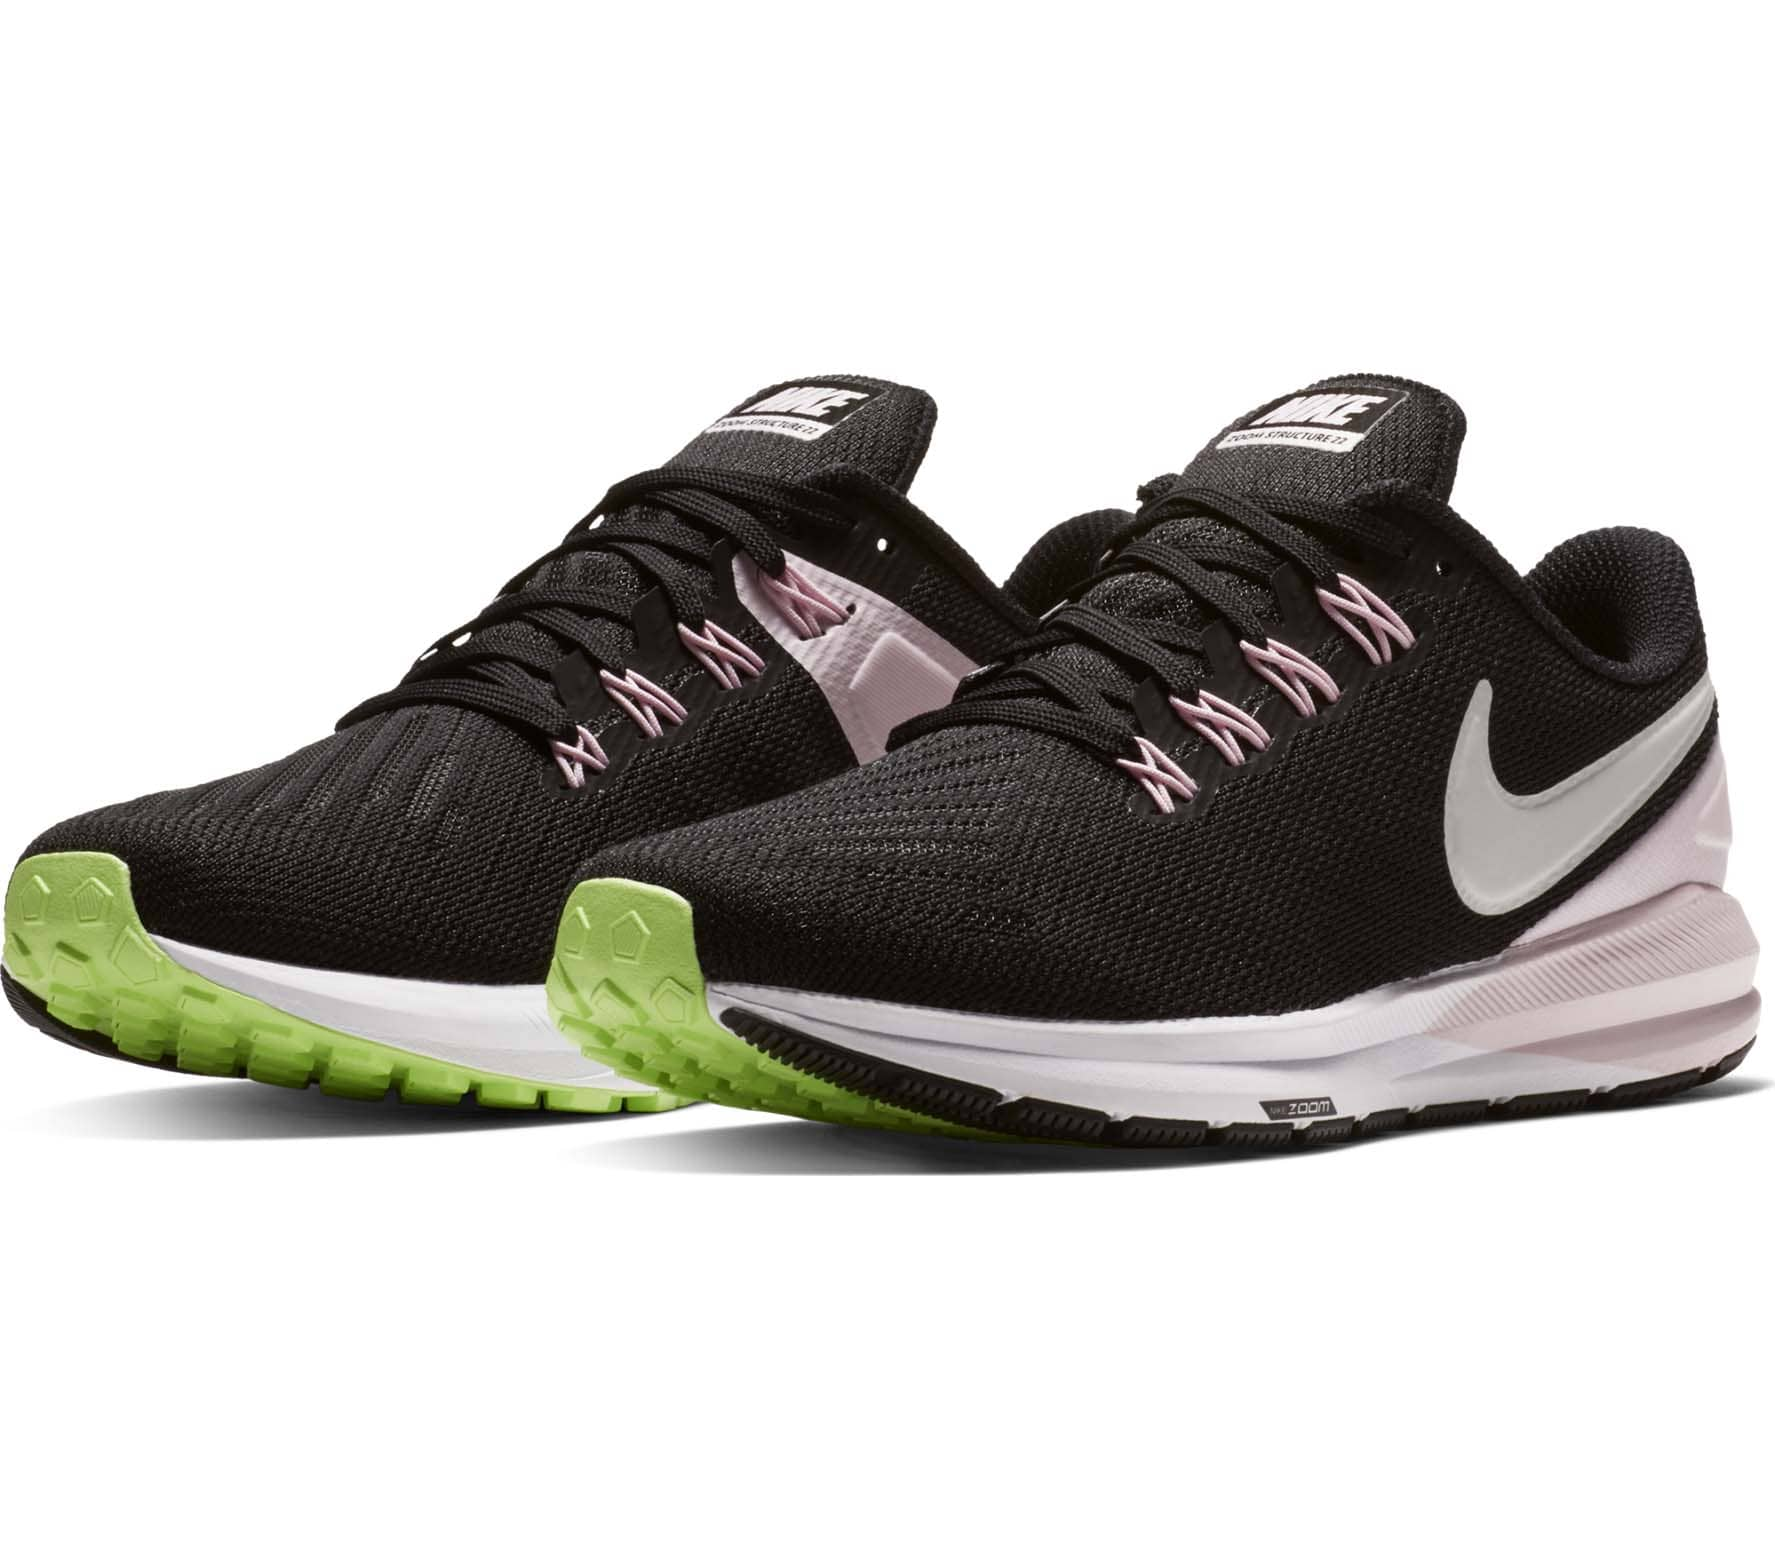 c6c5ab0f59d41 Nike - Air Zoom Structure 22 women s running shoes (black pink ...